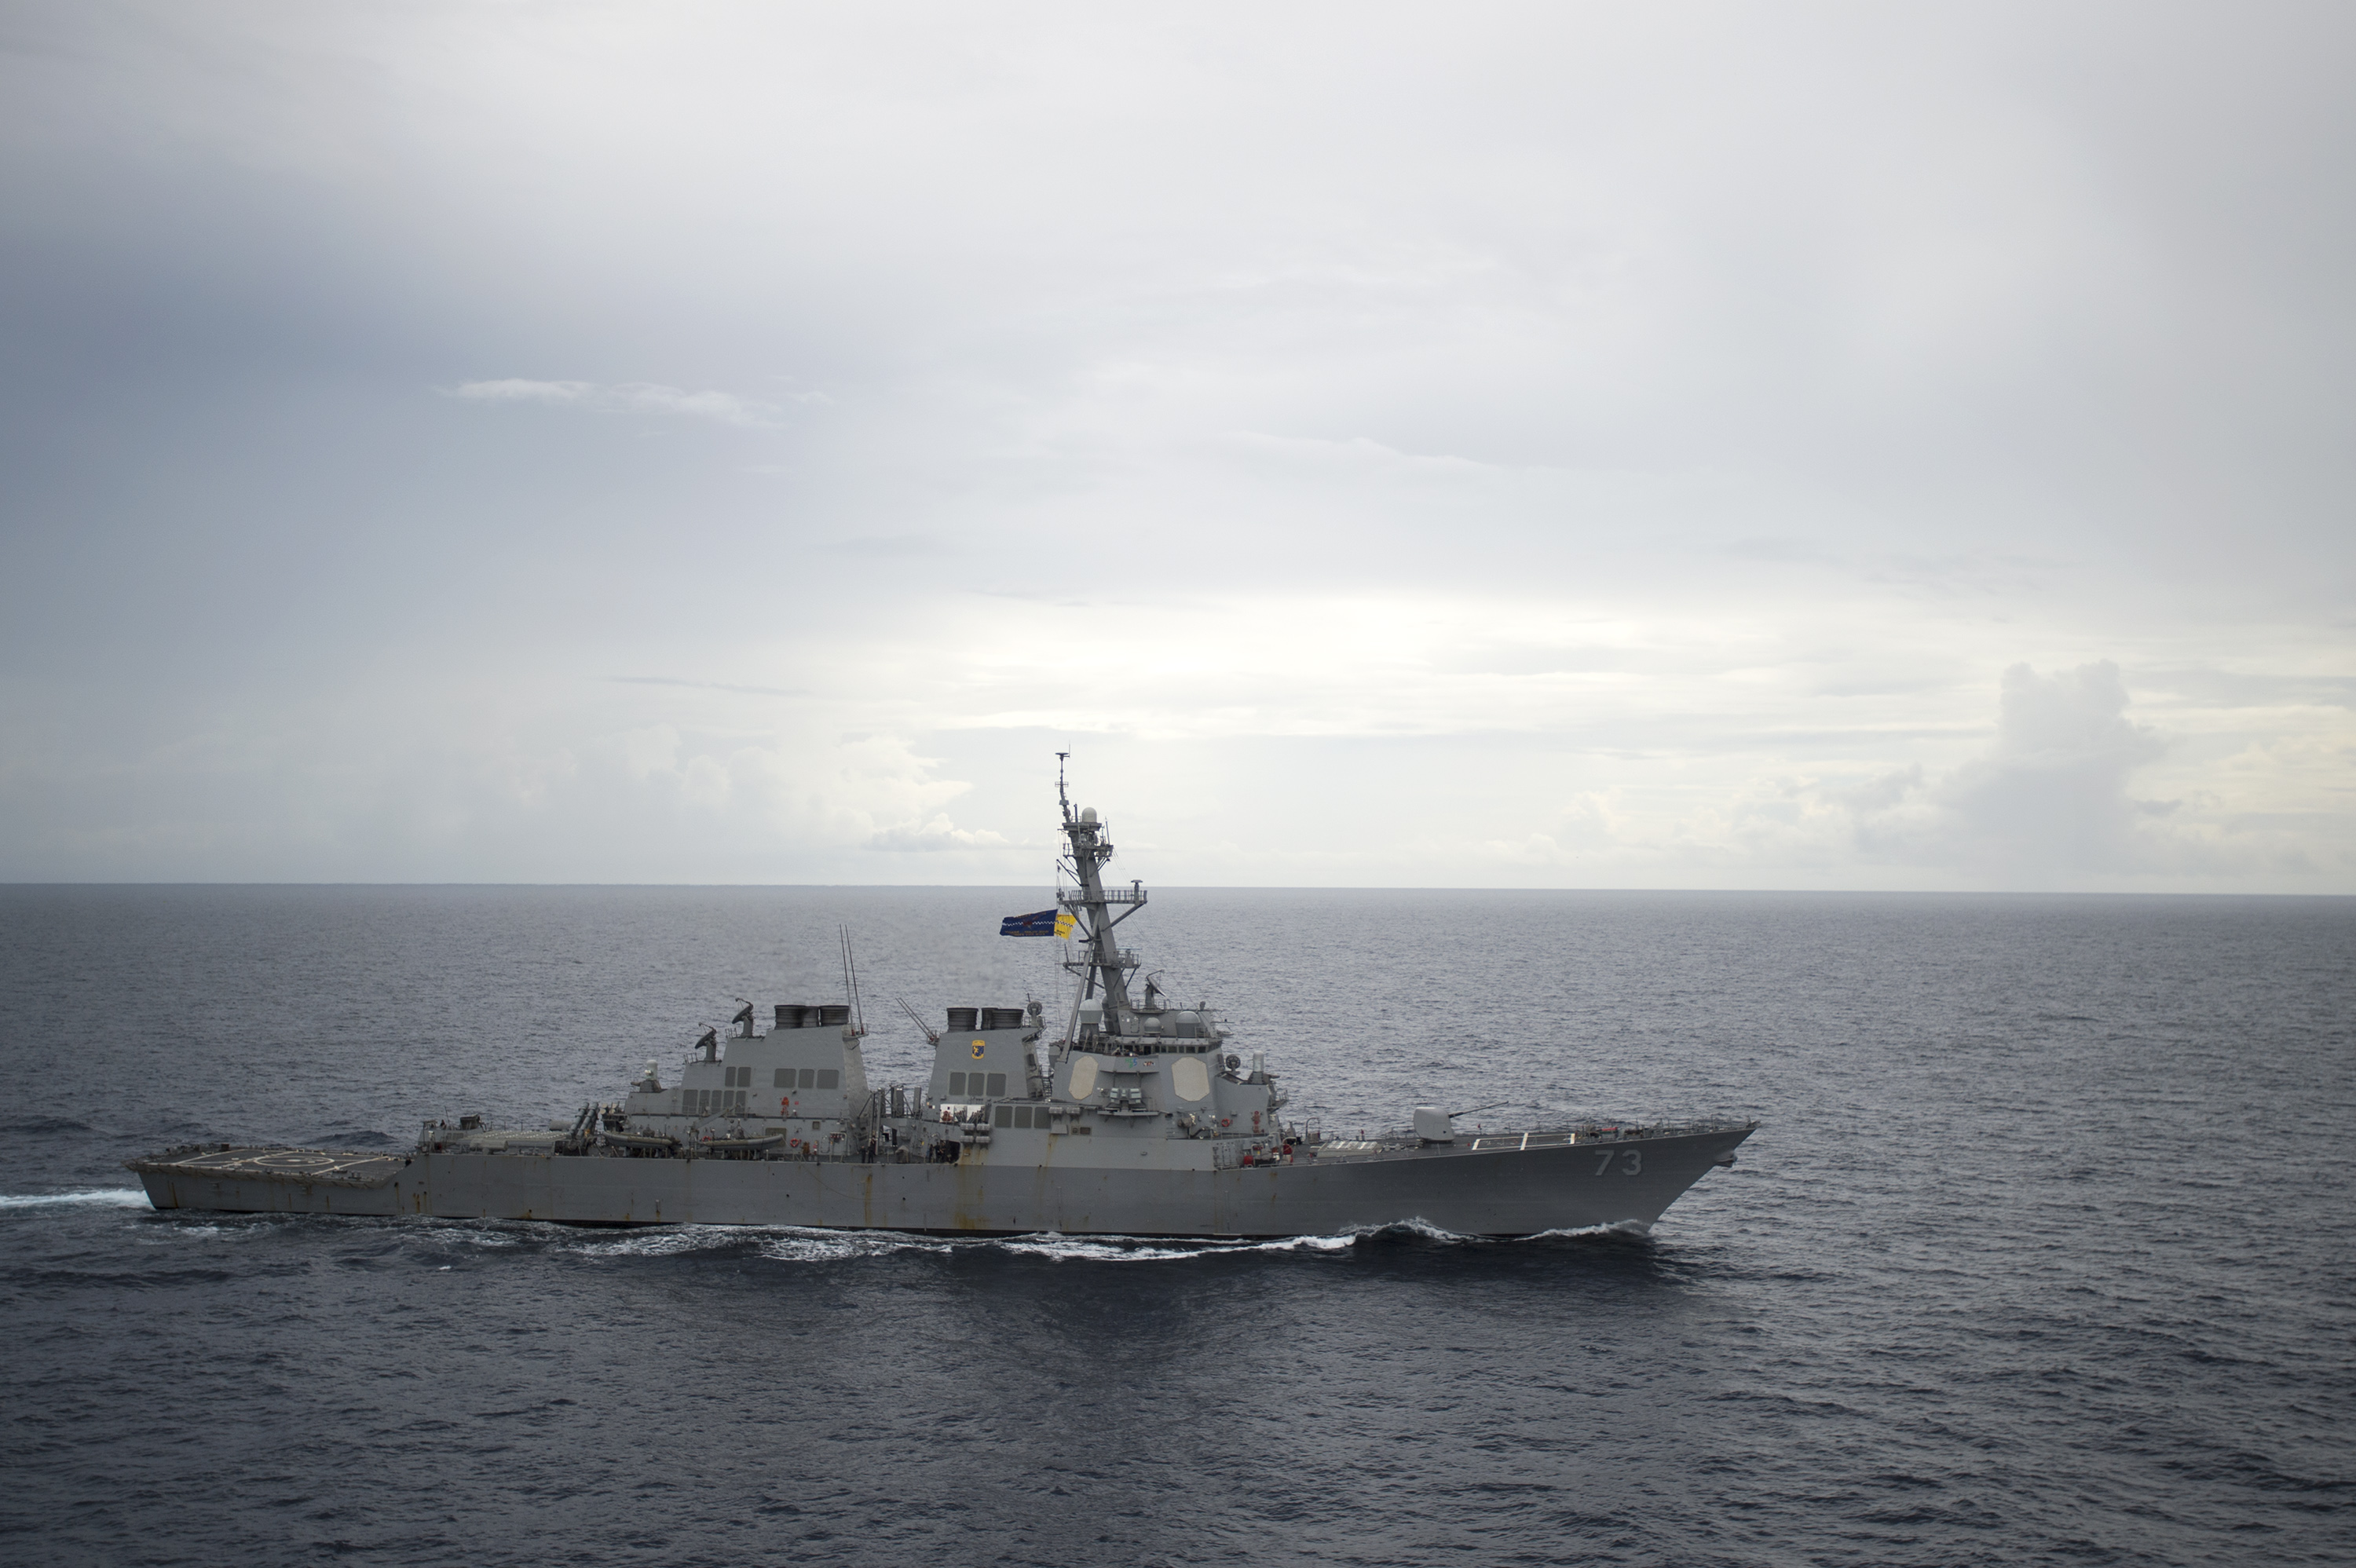 Guided-missile destroyer USS Decatur (DDG-73) operates in the South China Sea on Oct. 13, 2016